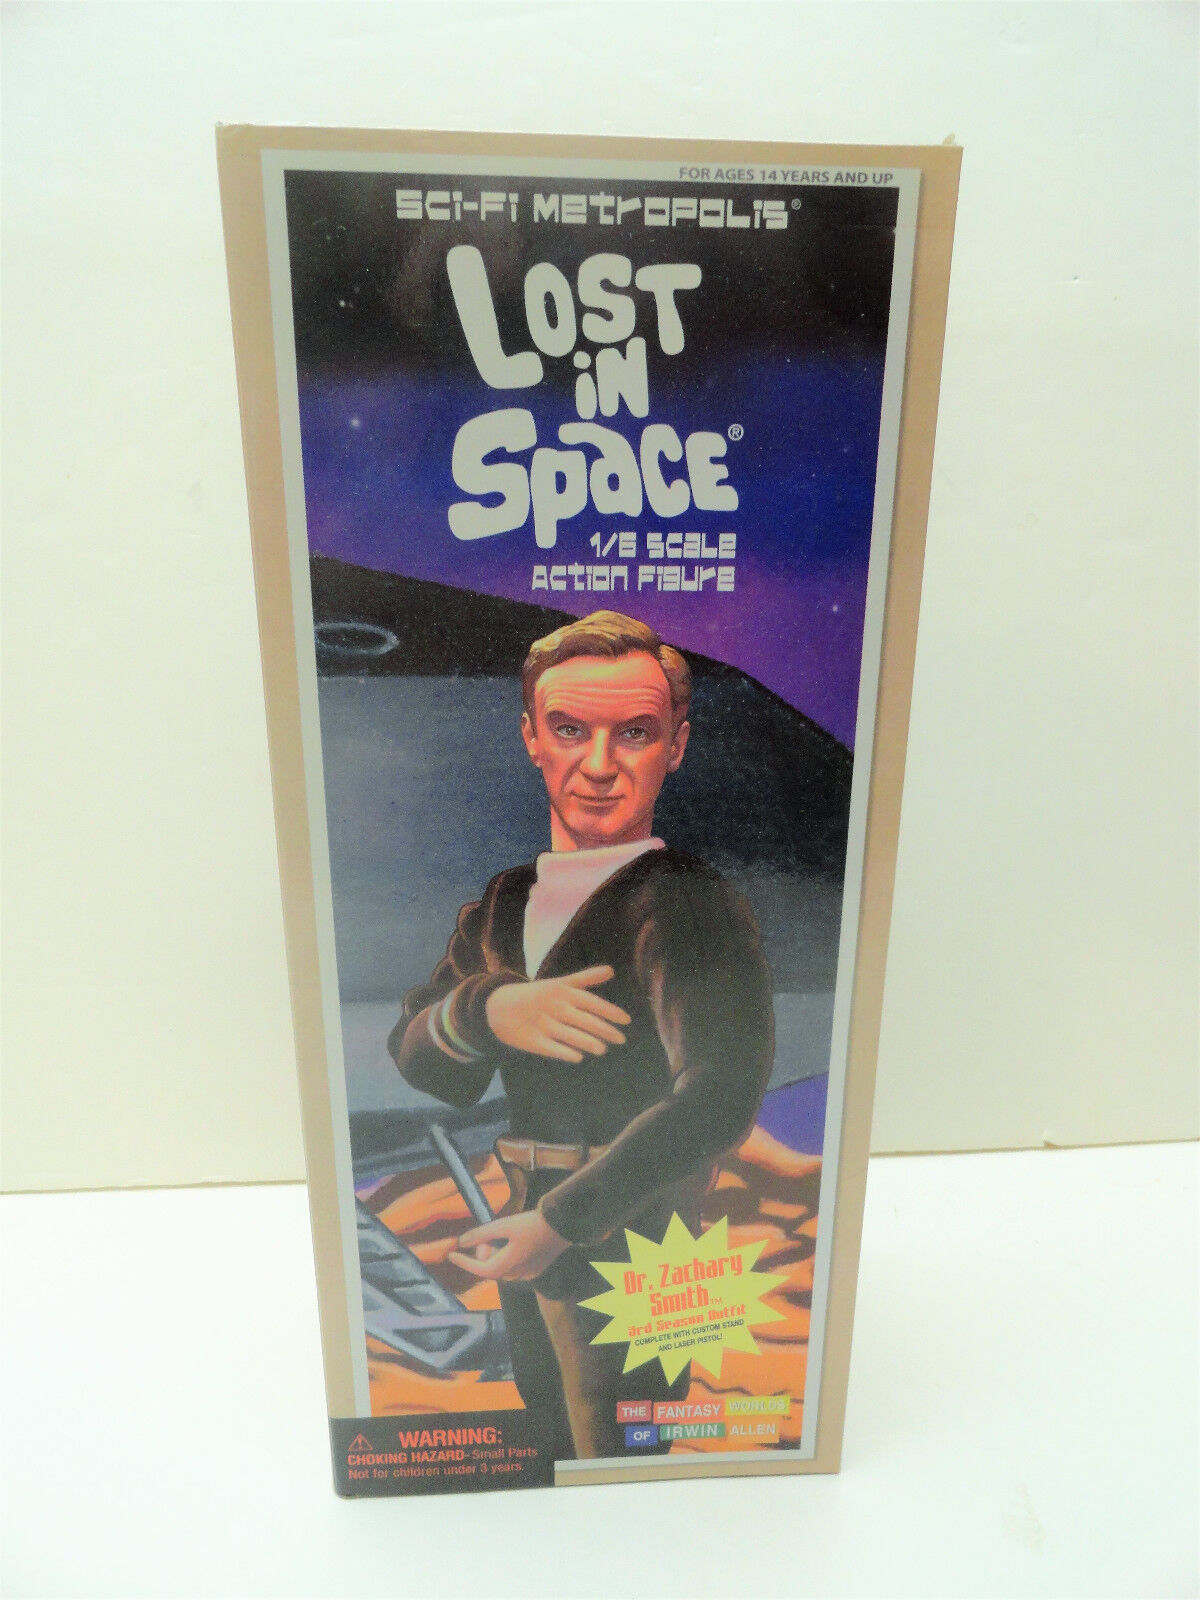 LOST IN SPACE DR. ZACHARY SMITH 12